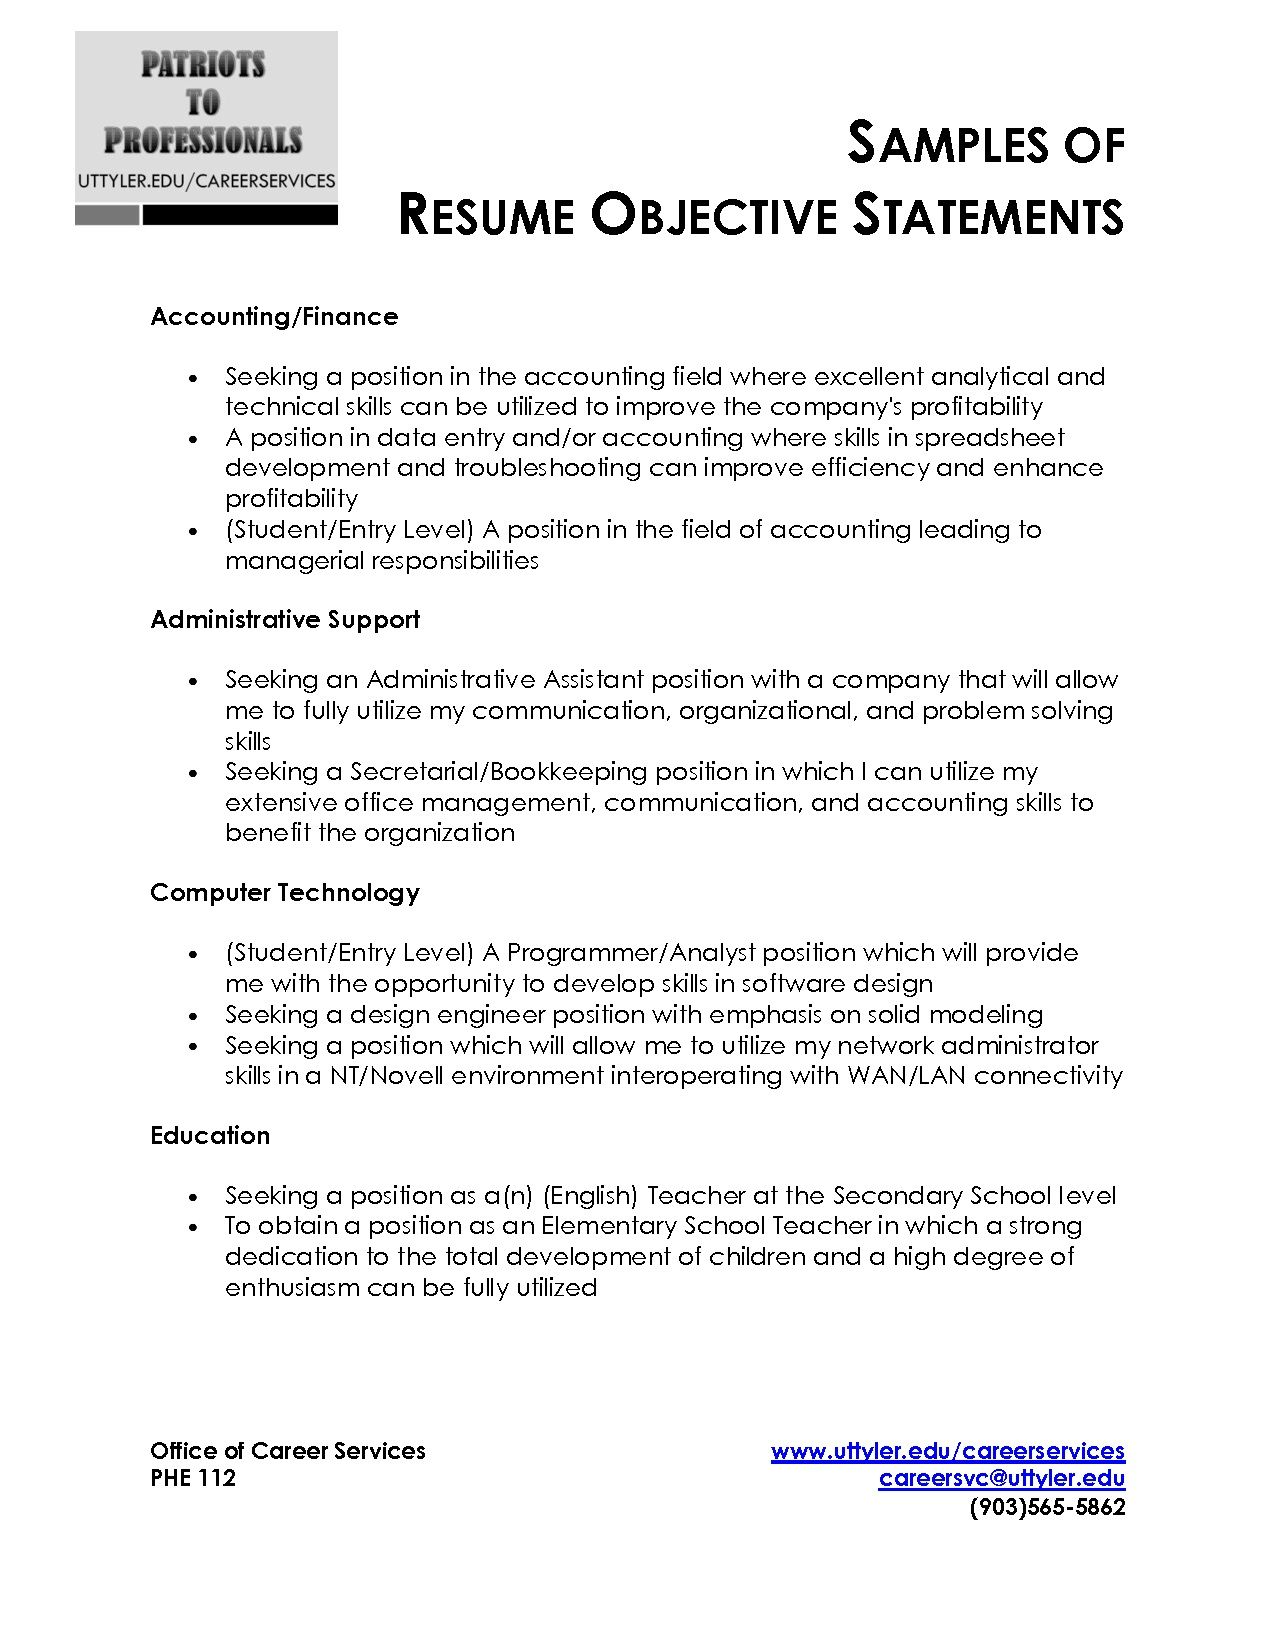 High Quality Sample Resume Objective Statement   (adsbygoogle U003d Window.adsbygoogle ||  []).push(); Sample Resume Objective Statement Will Give Ideas And  Strategies To ...